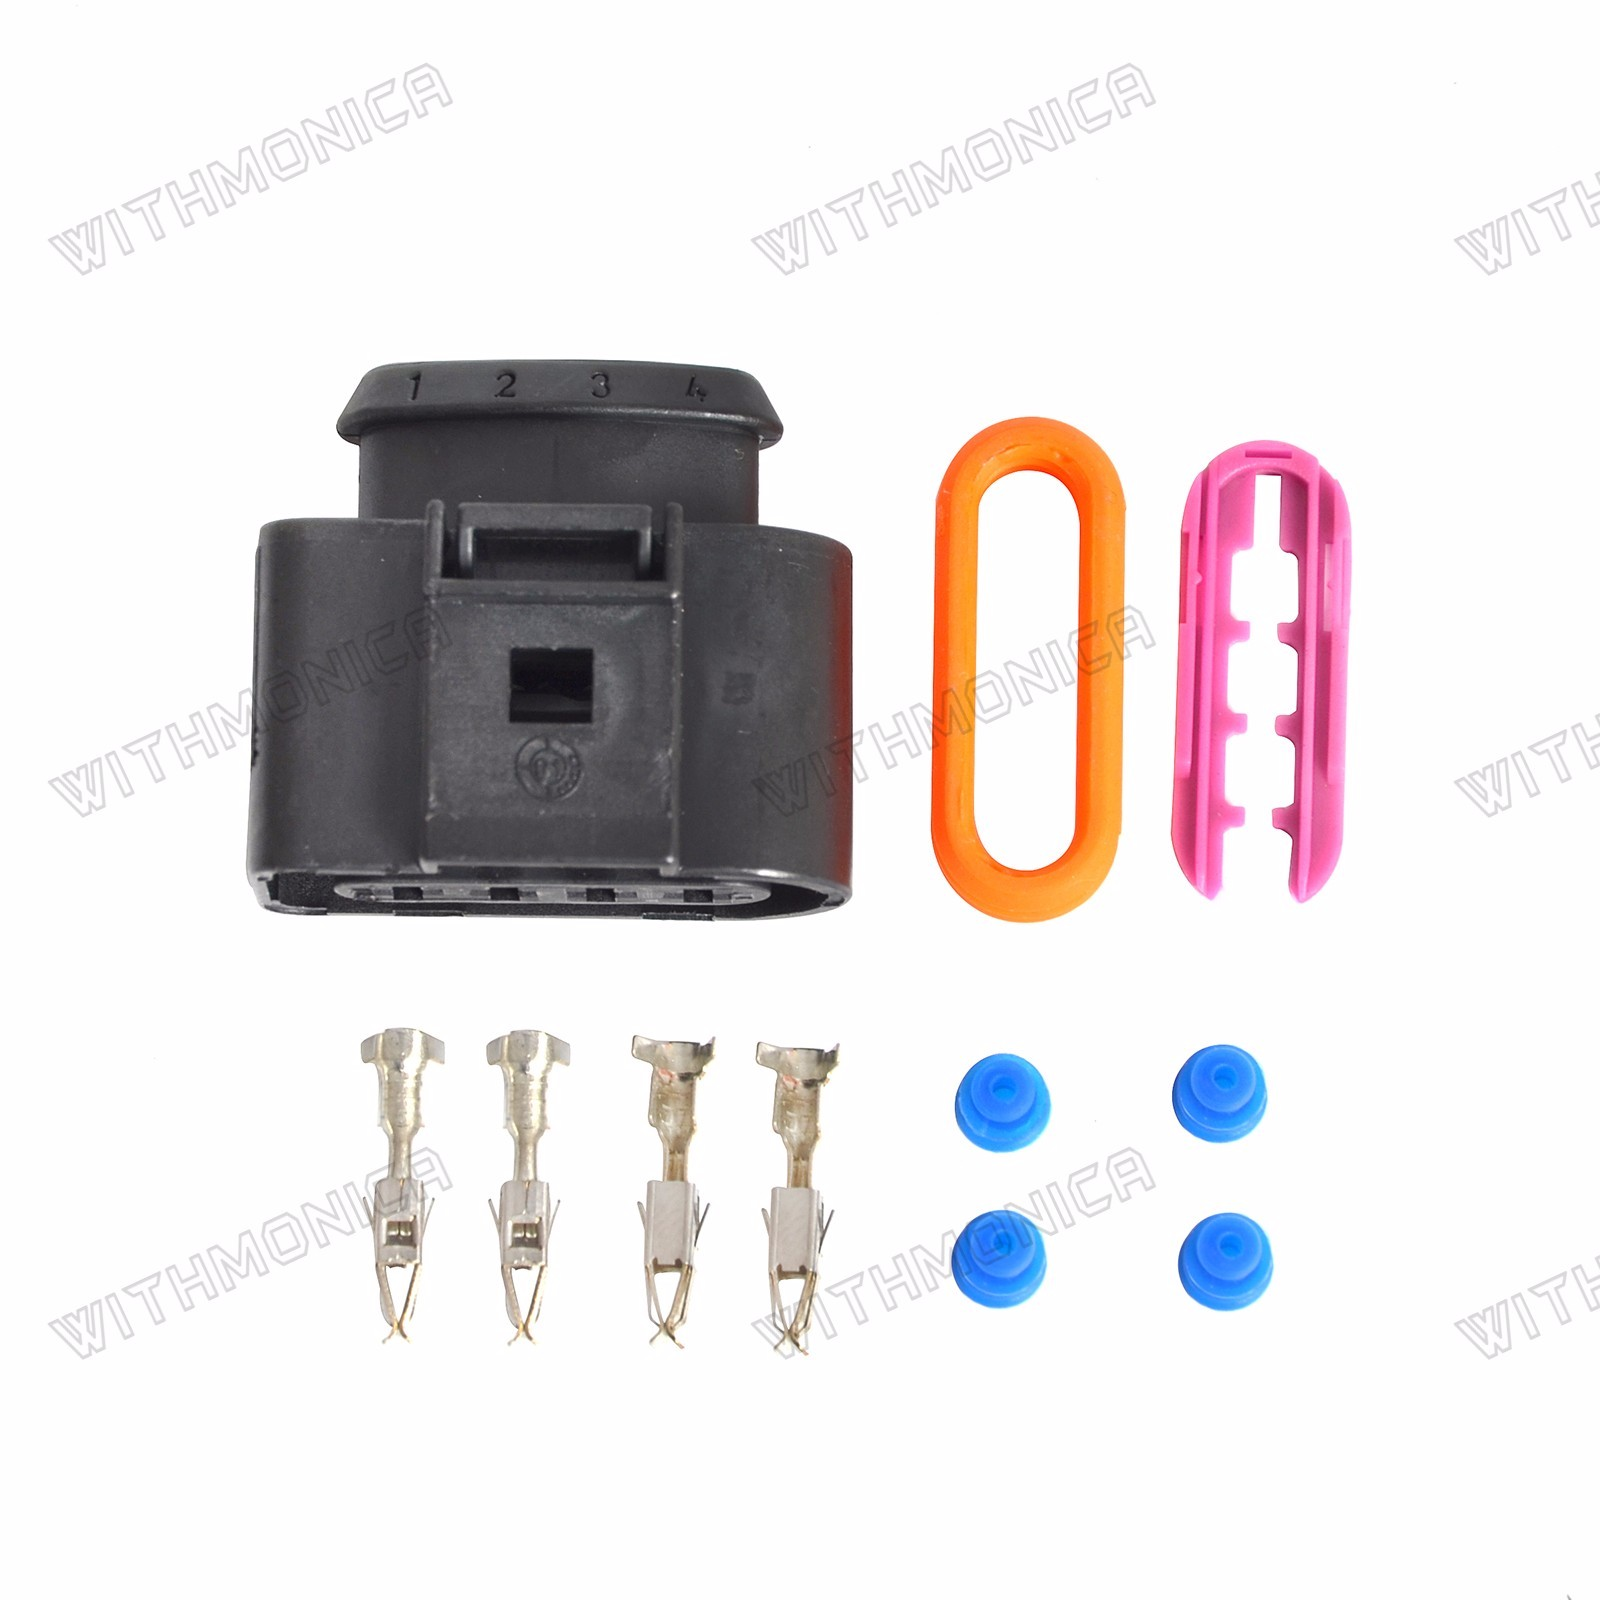 audi vw ignition coil wiring harness connector repair kit a4 a6 a8 description